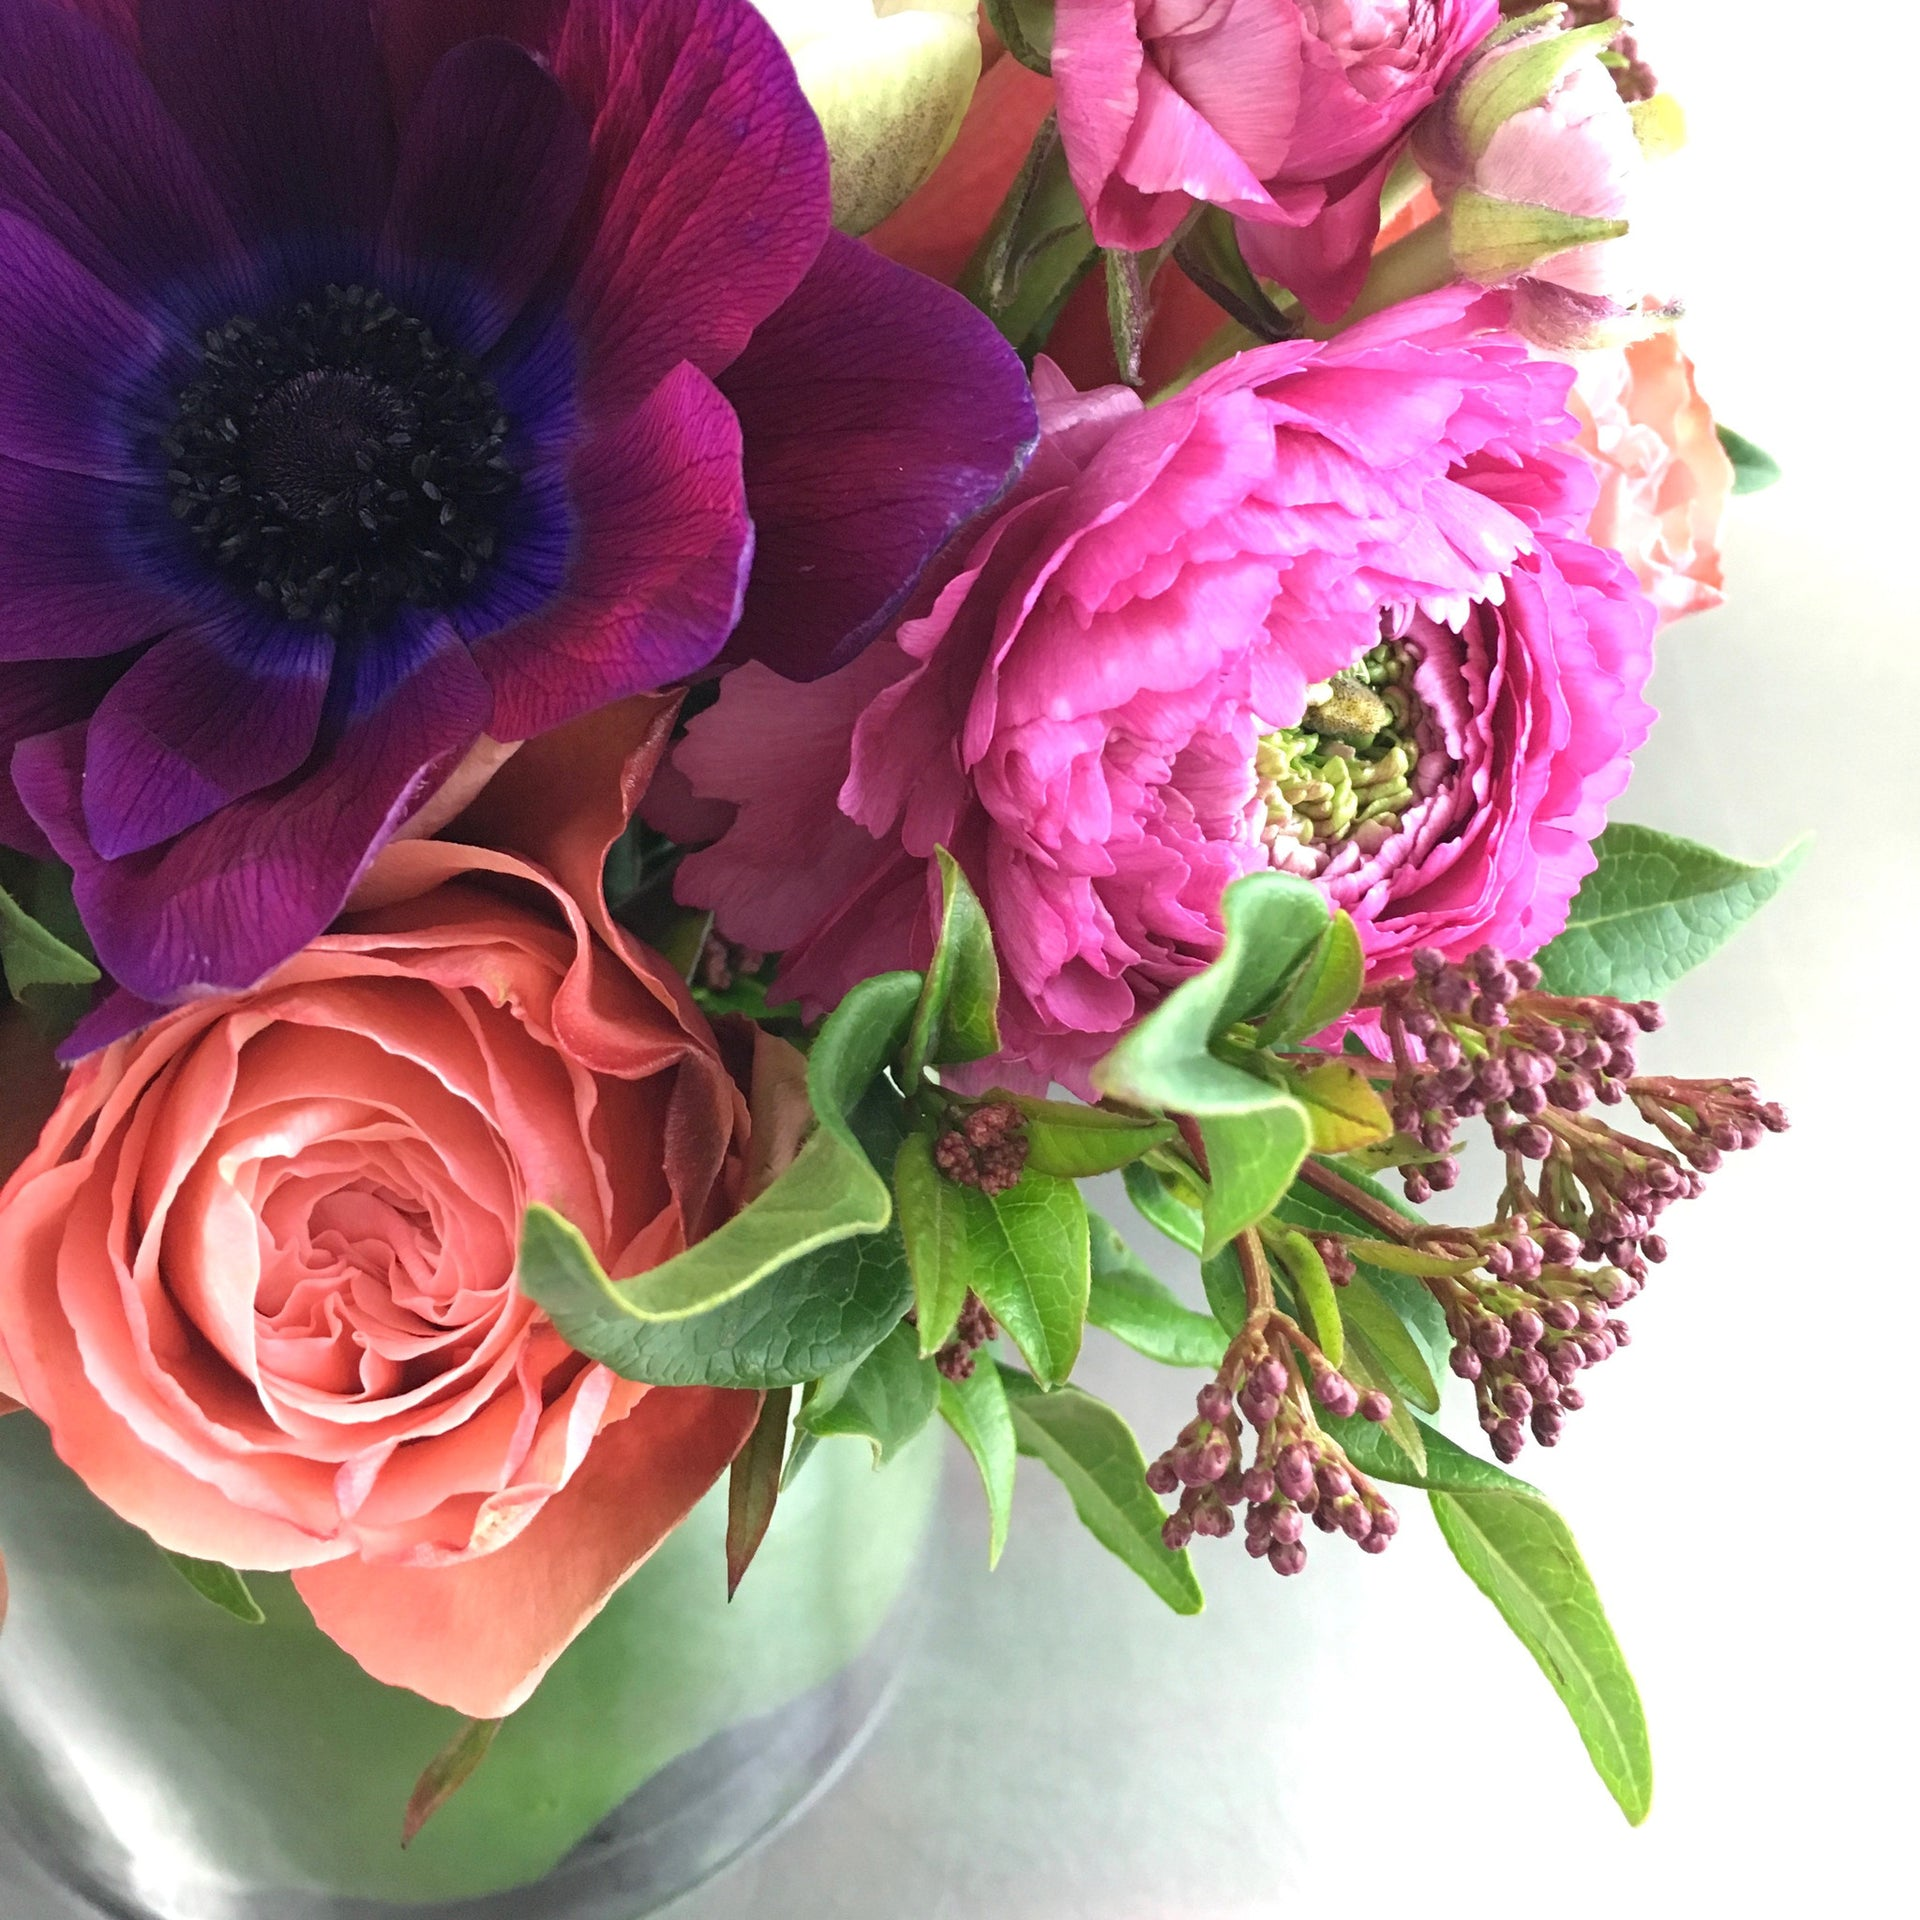 Arrangement with rose, anemone, and ranunculus.